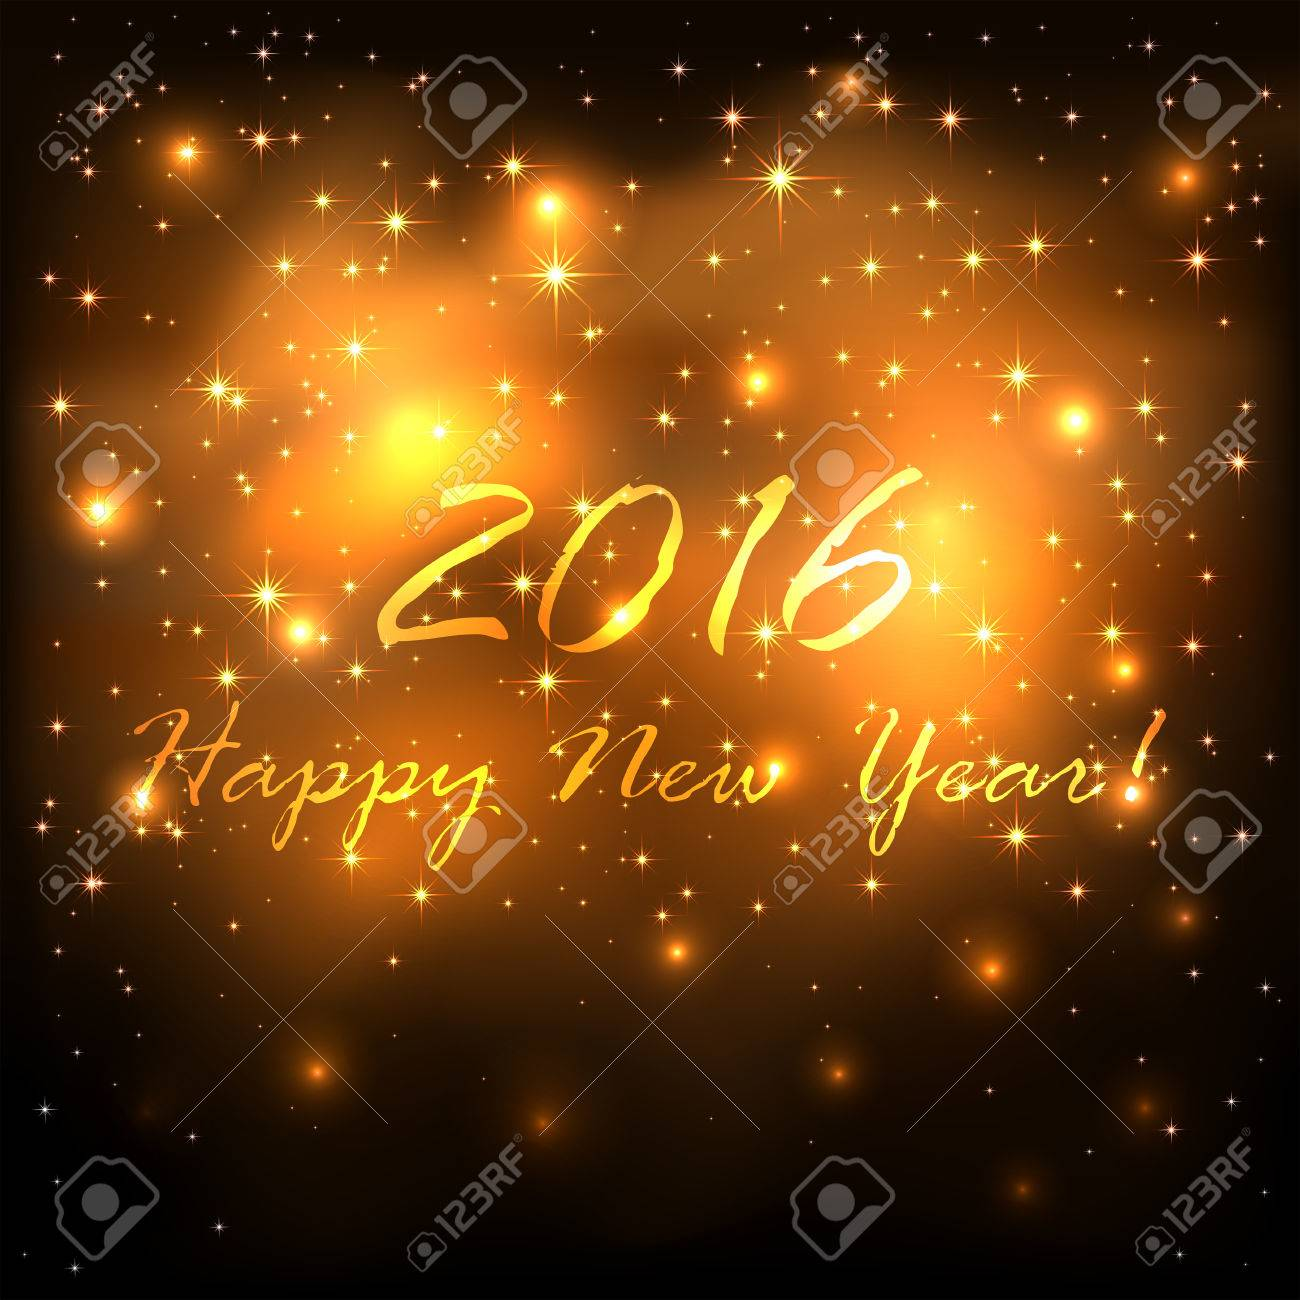 new years theme shiny golden background with stars and blurry lights illustration stock